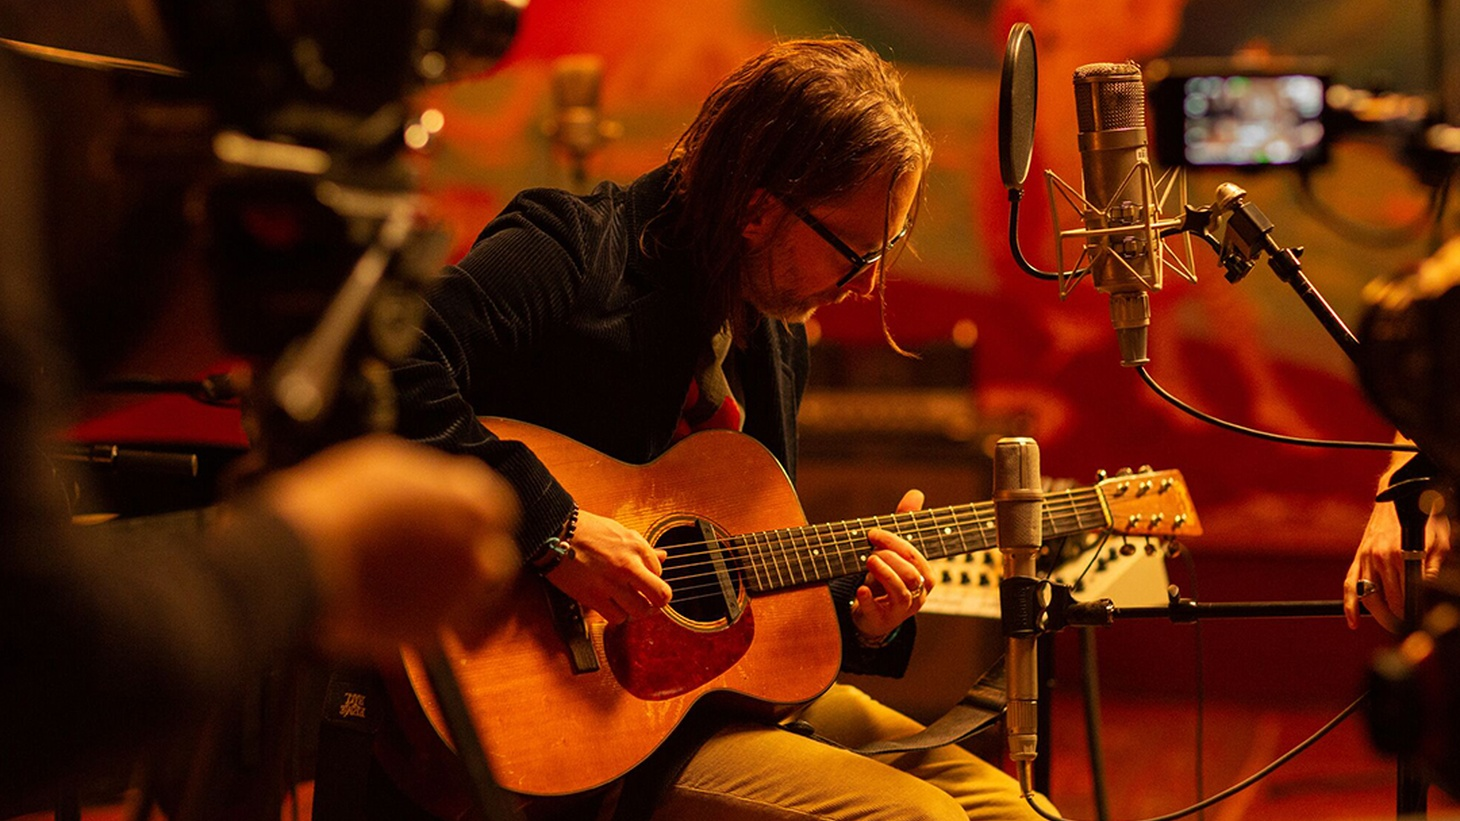 It was a remake of the 1977 supernatural horror film 'Suspiria' that drew Thom Yorke to compose his first feature film score. We'll hear about his film scoring process as well as a few live tracks from the film's soundtrack.